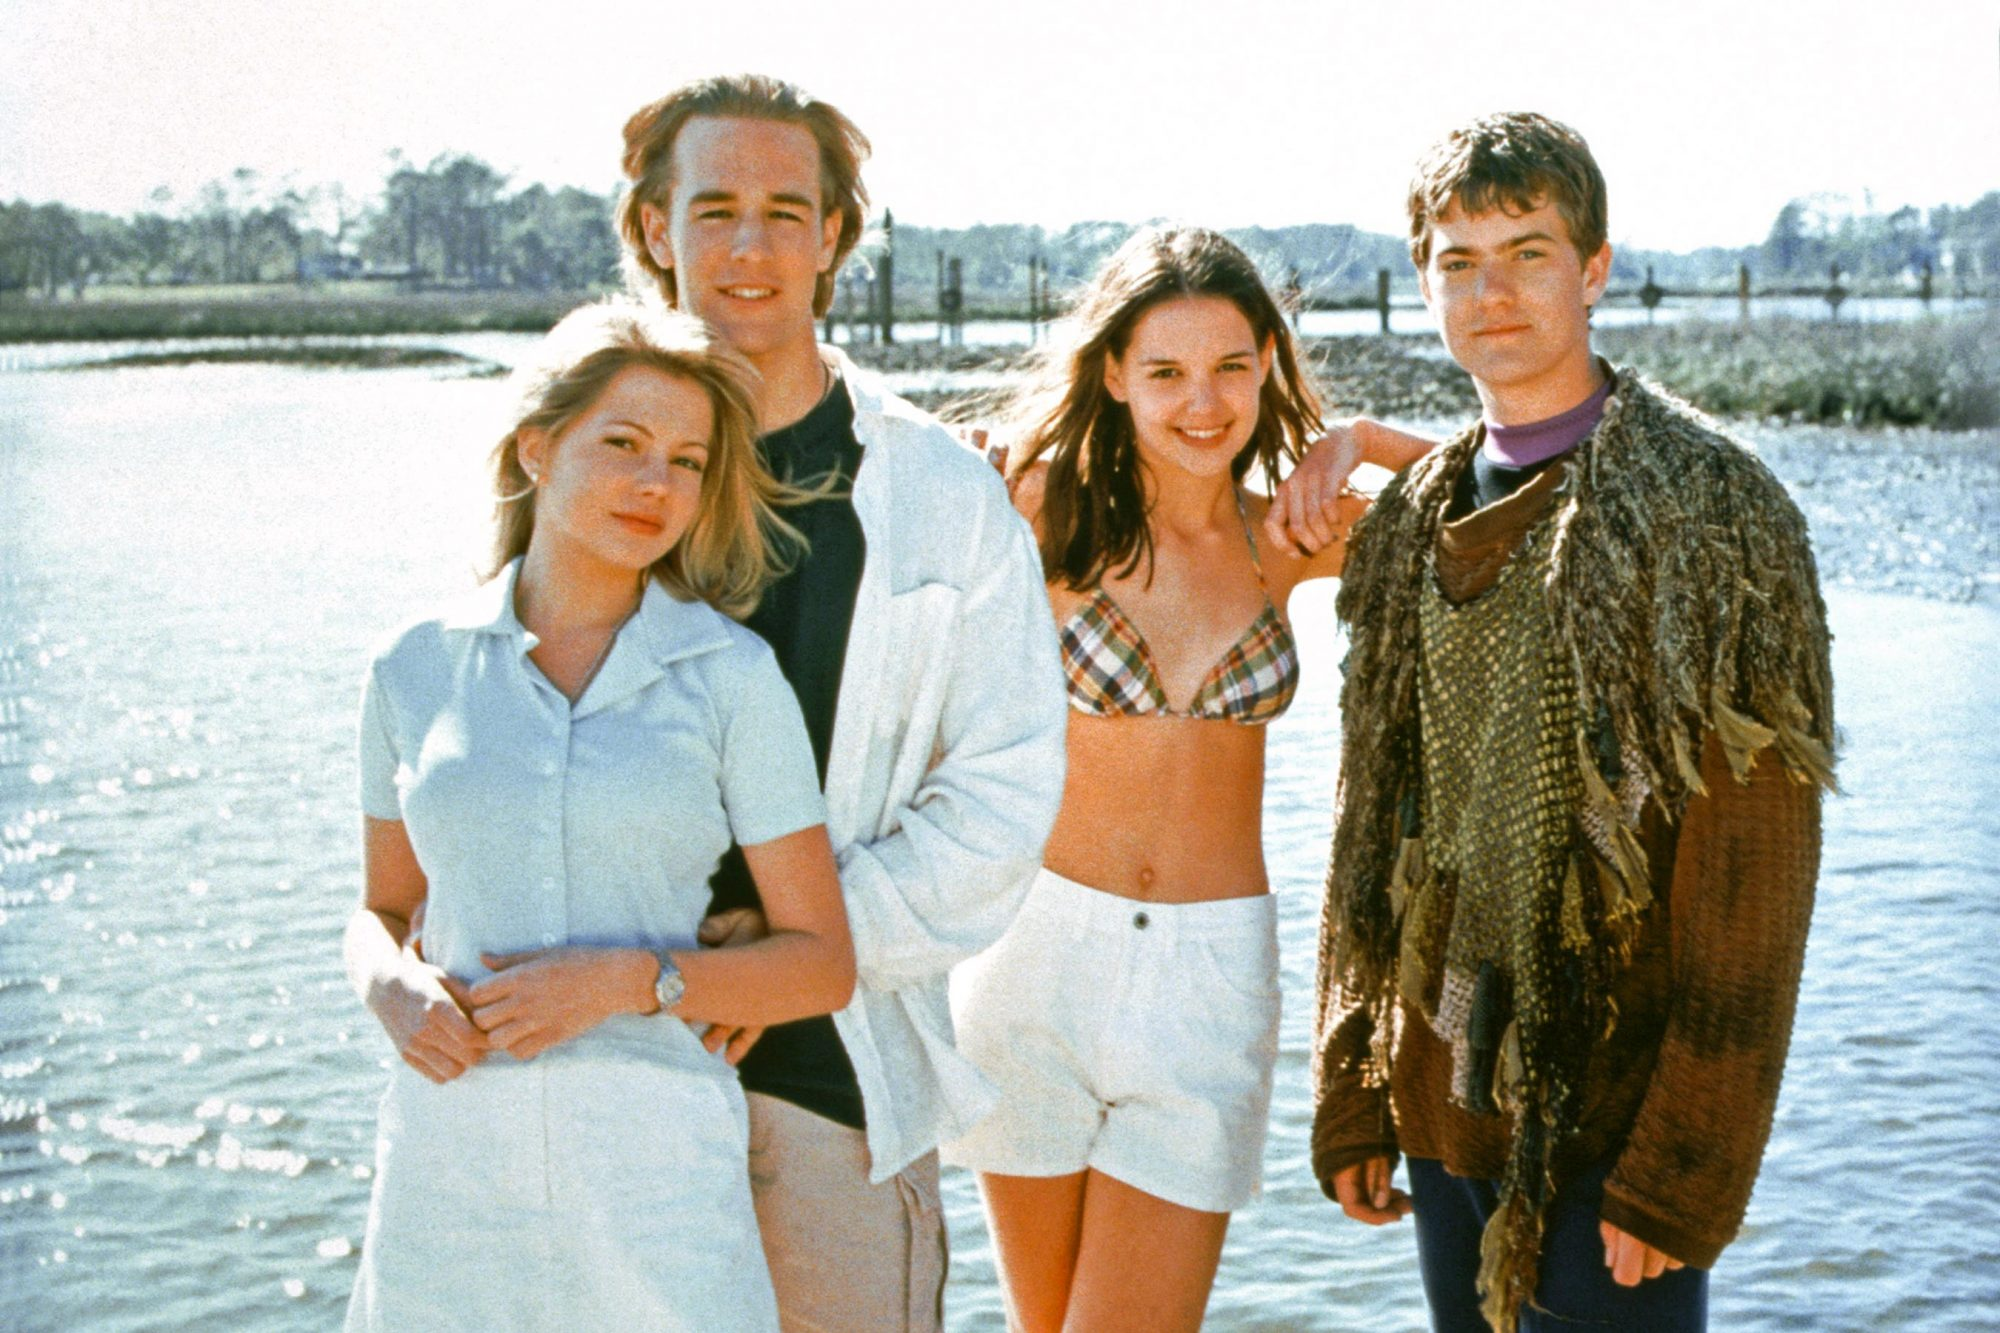 DAWSON'S CREEK, (from left): Michelle Williams, James Van Der Beek, Katie Holmes, Joshua Jackson, (S